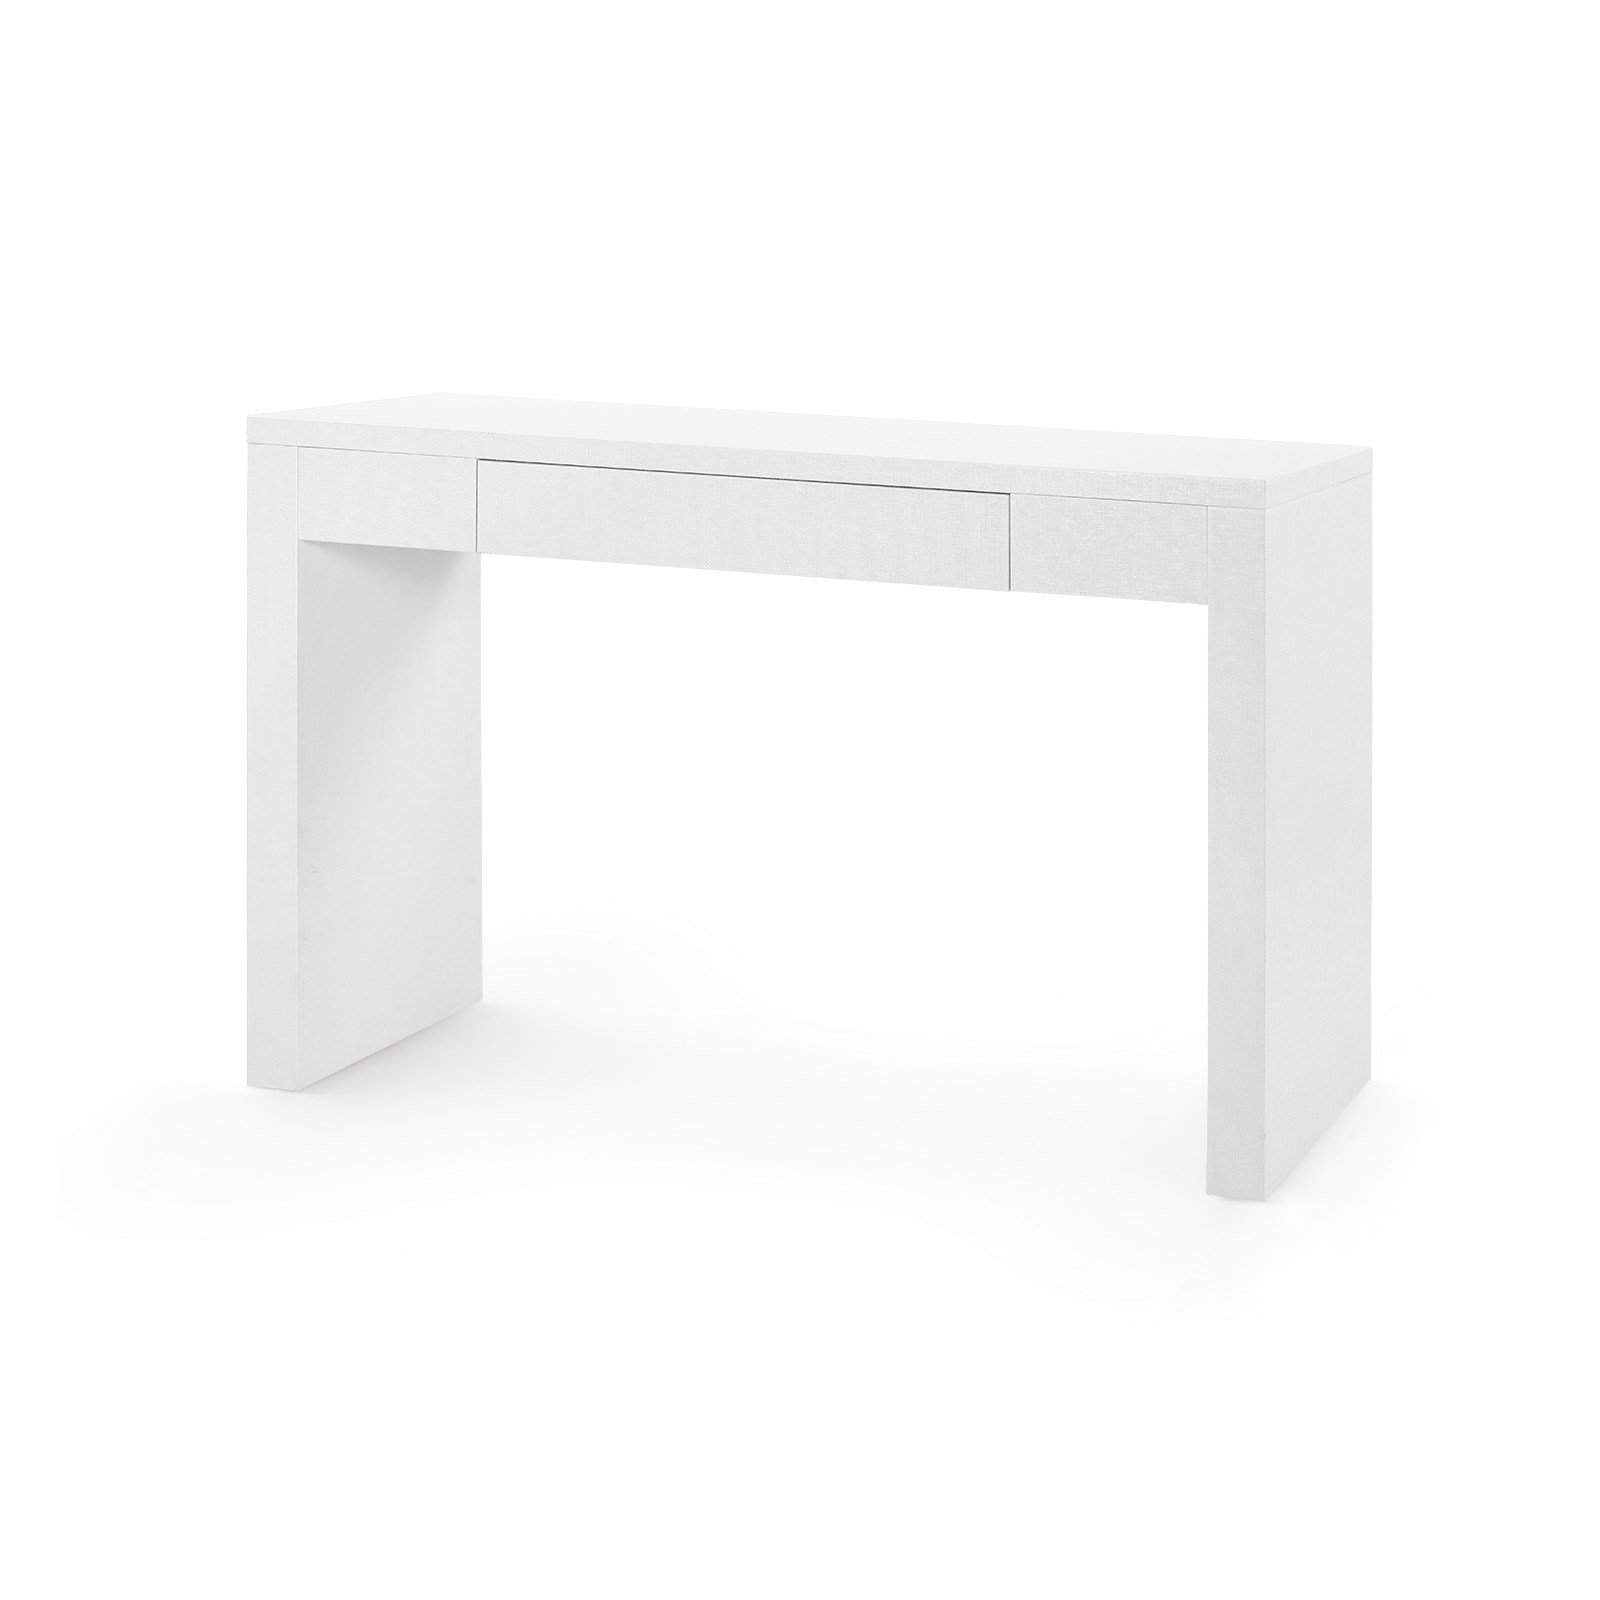 Bungalow 5 - MORGAN GRASSCLOTH CONSOLE TABLE in WHITE